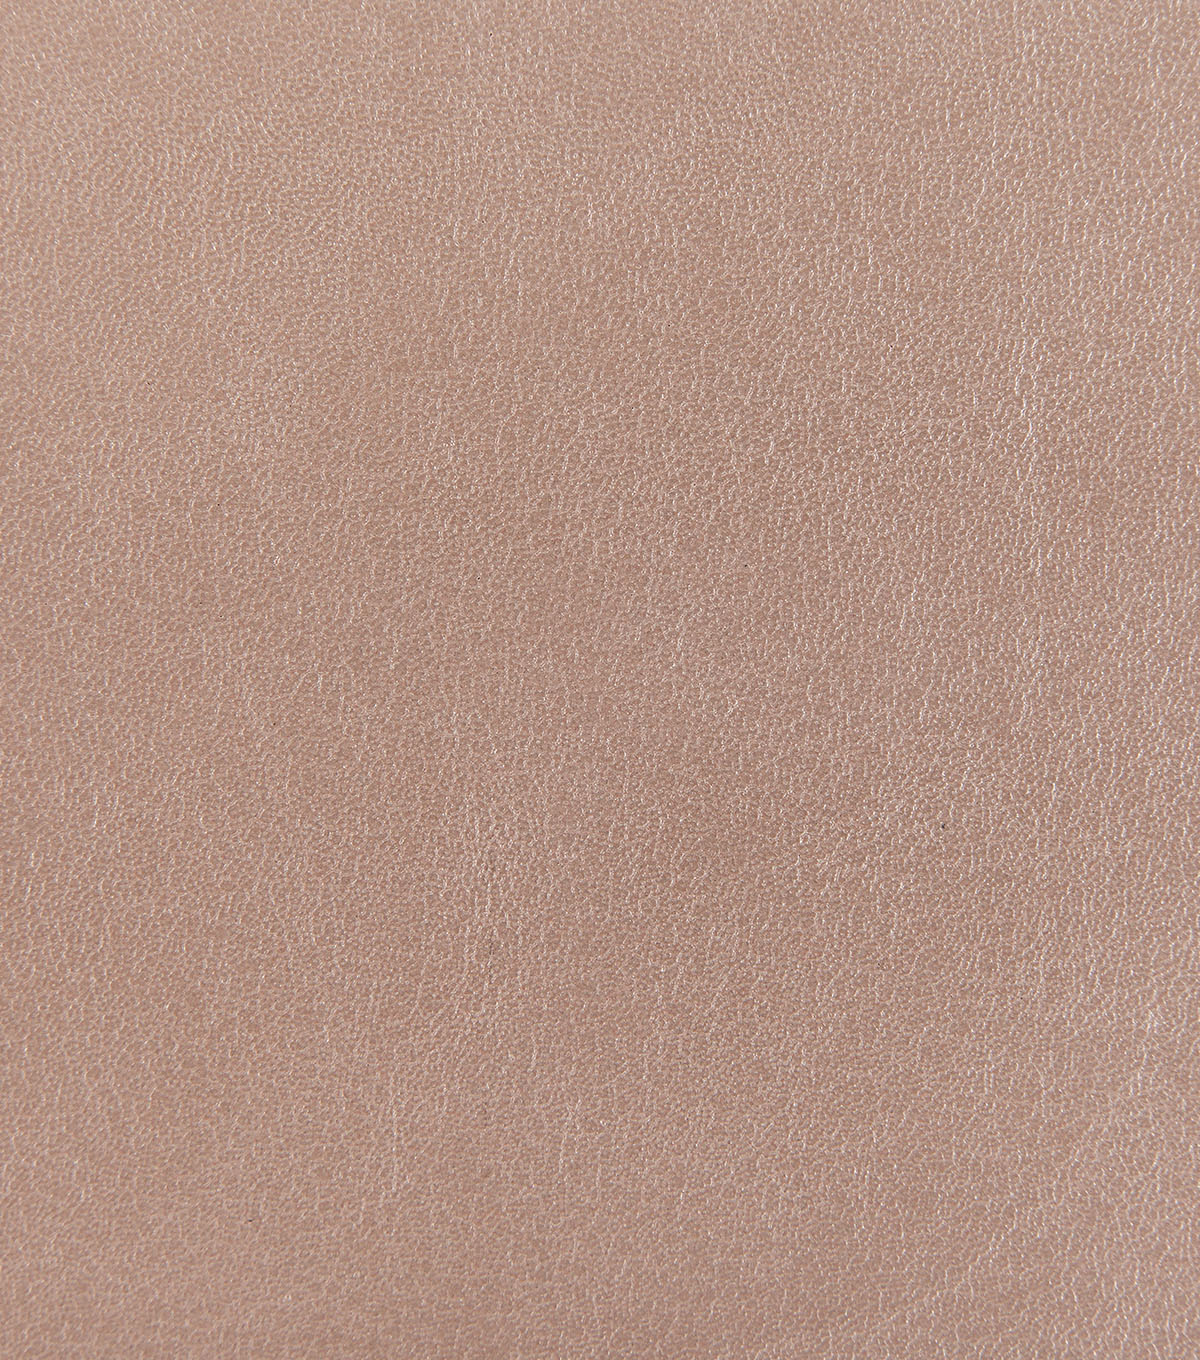 12 Quot X12 Quot Soft Metallic Rose Gold Leather Sheets Joann